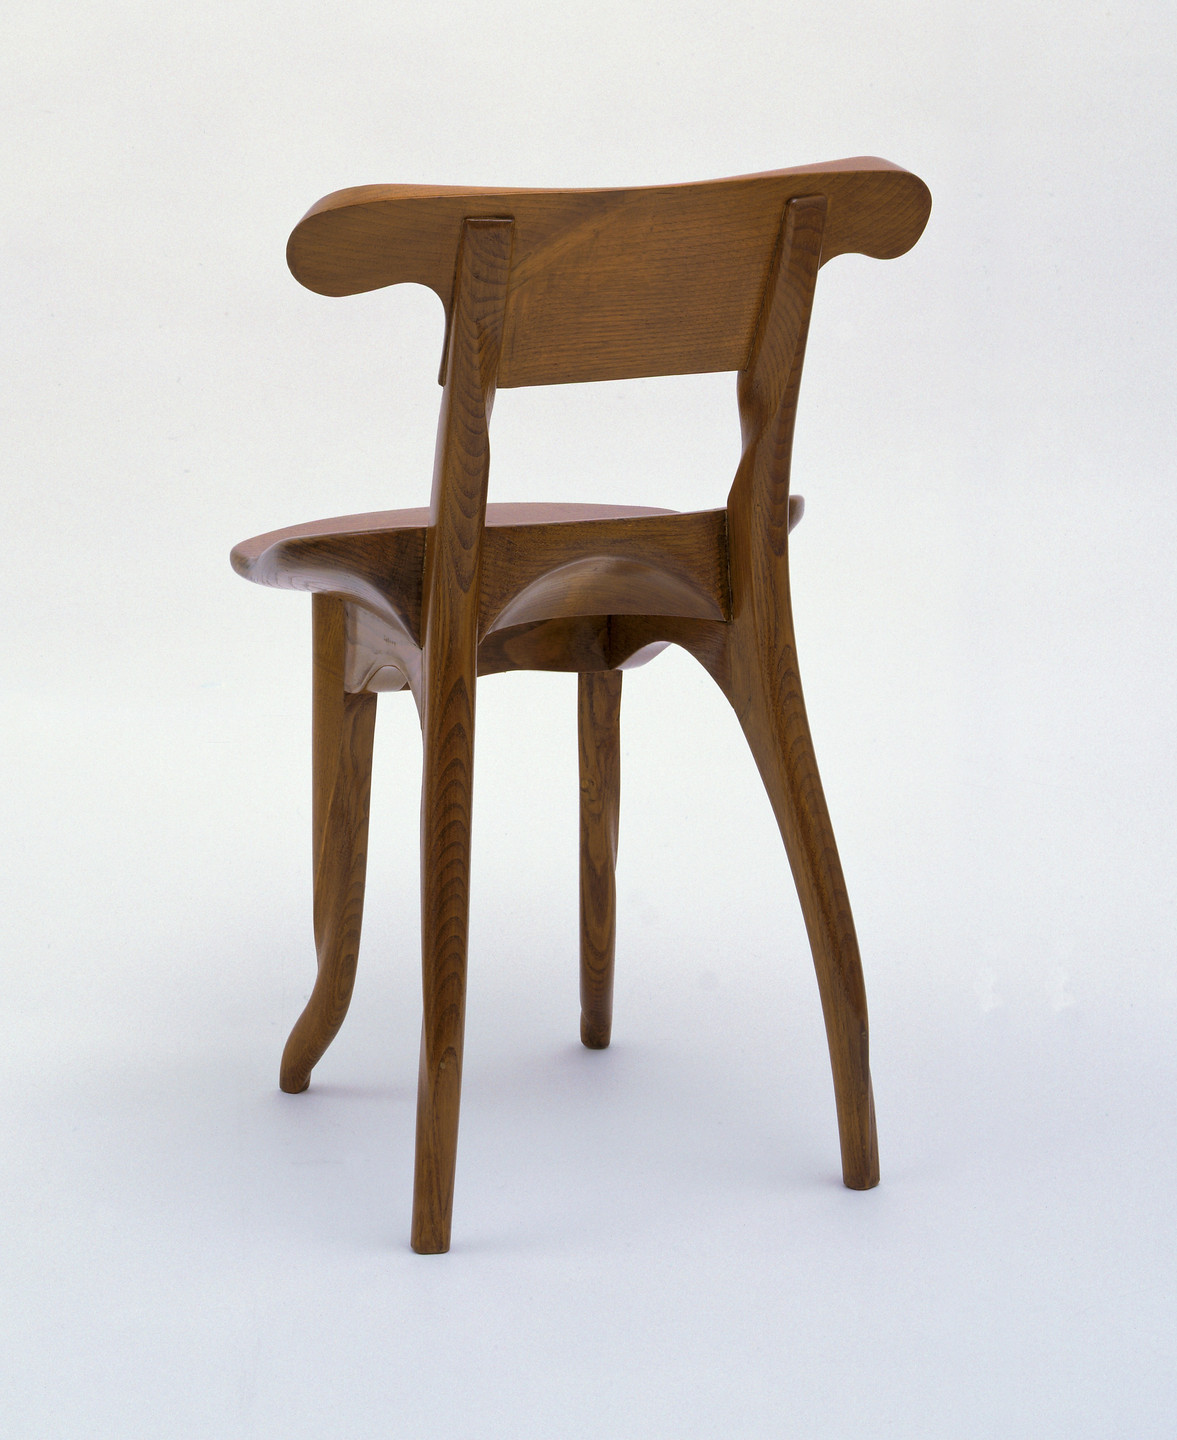 Antoni Gaudí. Side Chair. 1905-07